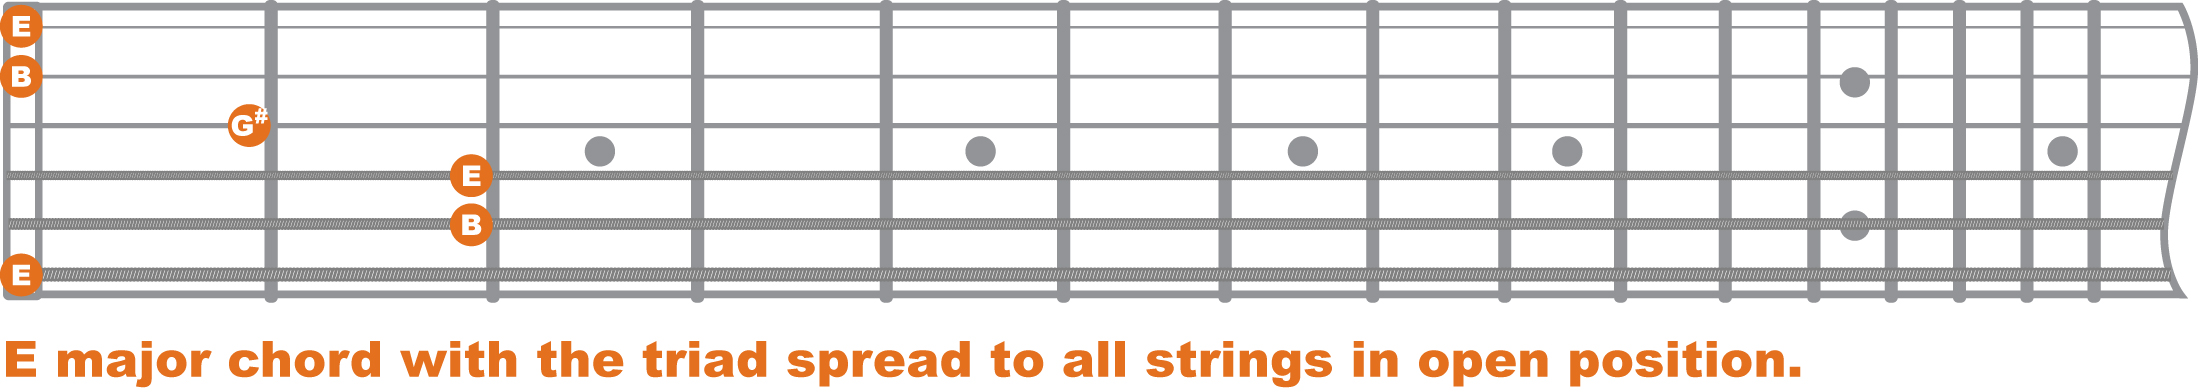 chord theory minor chords baltimore guitar lessons. Black Bedroom Furniture Sets. Home Design Ideas